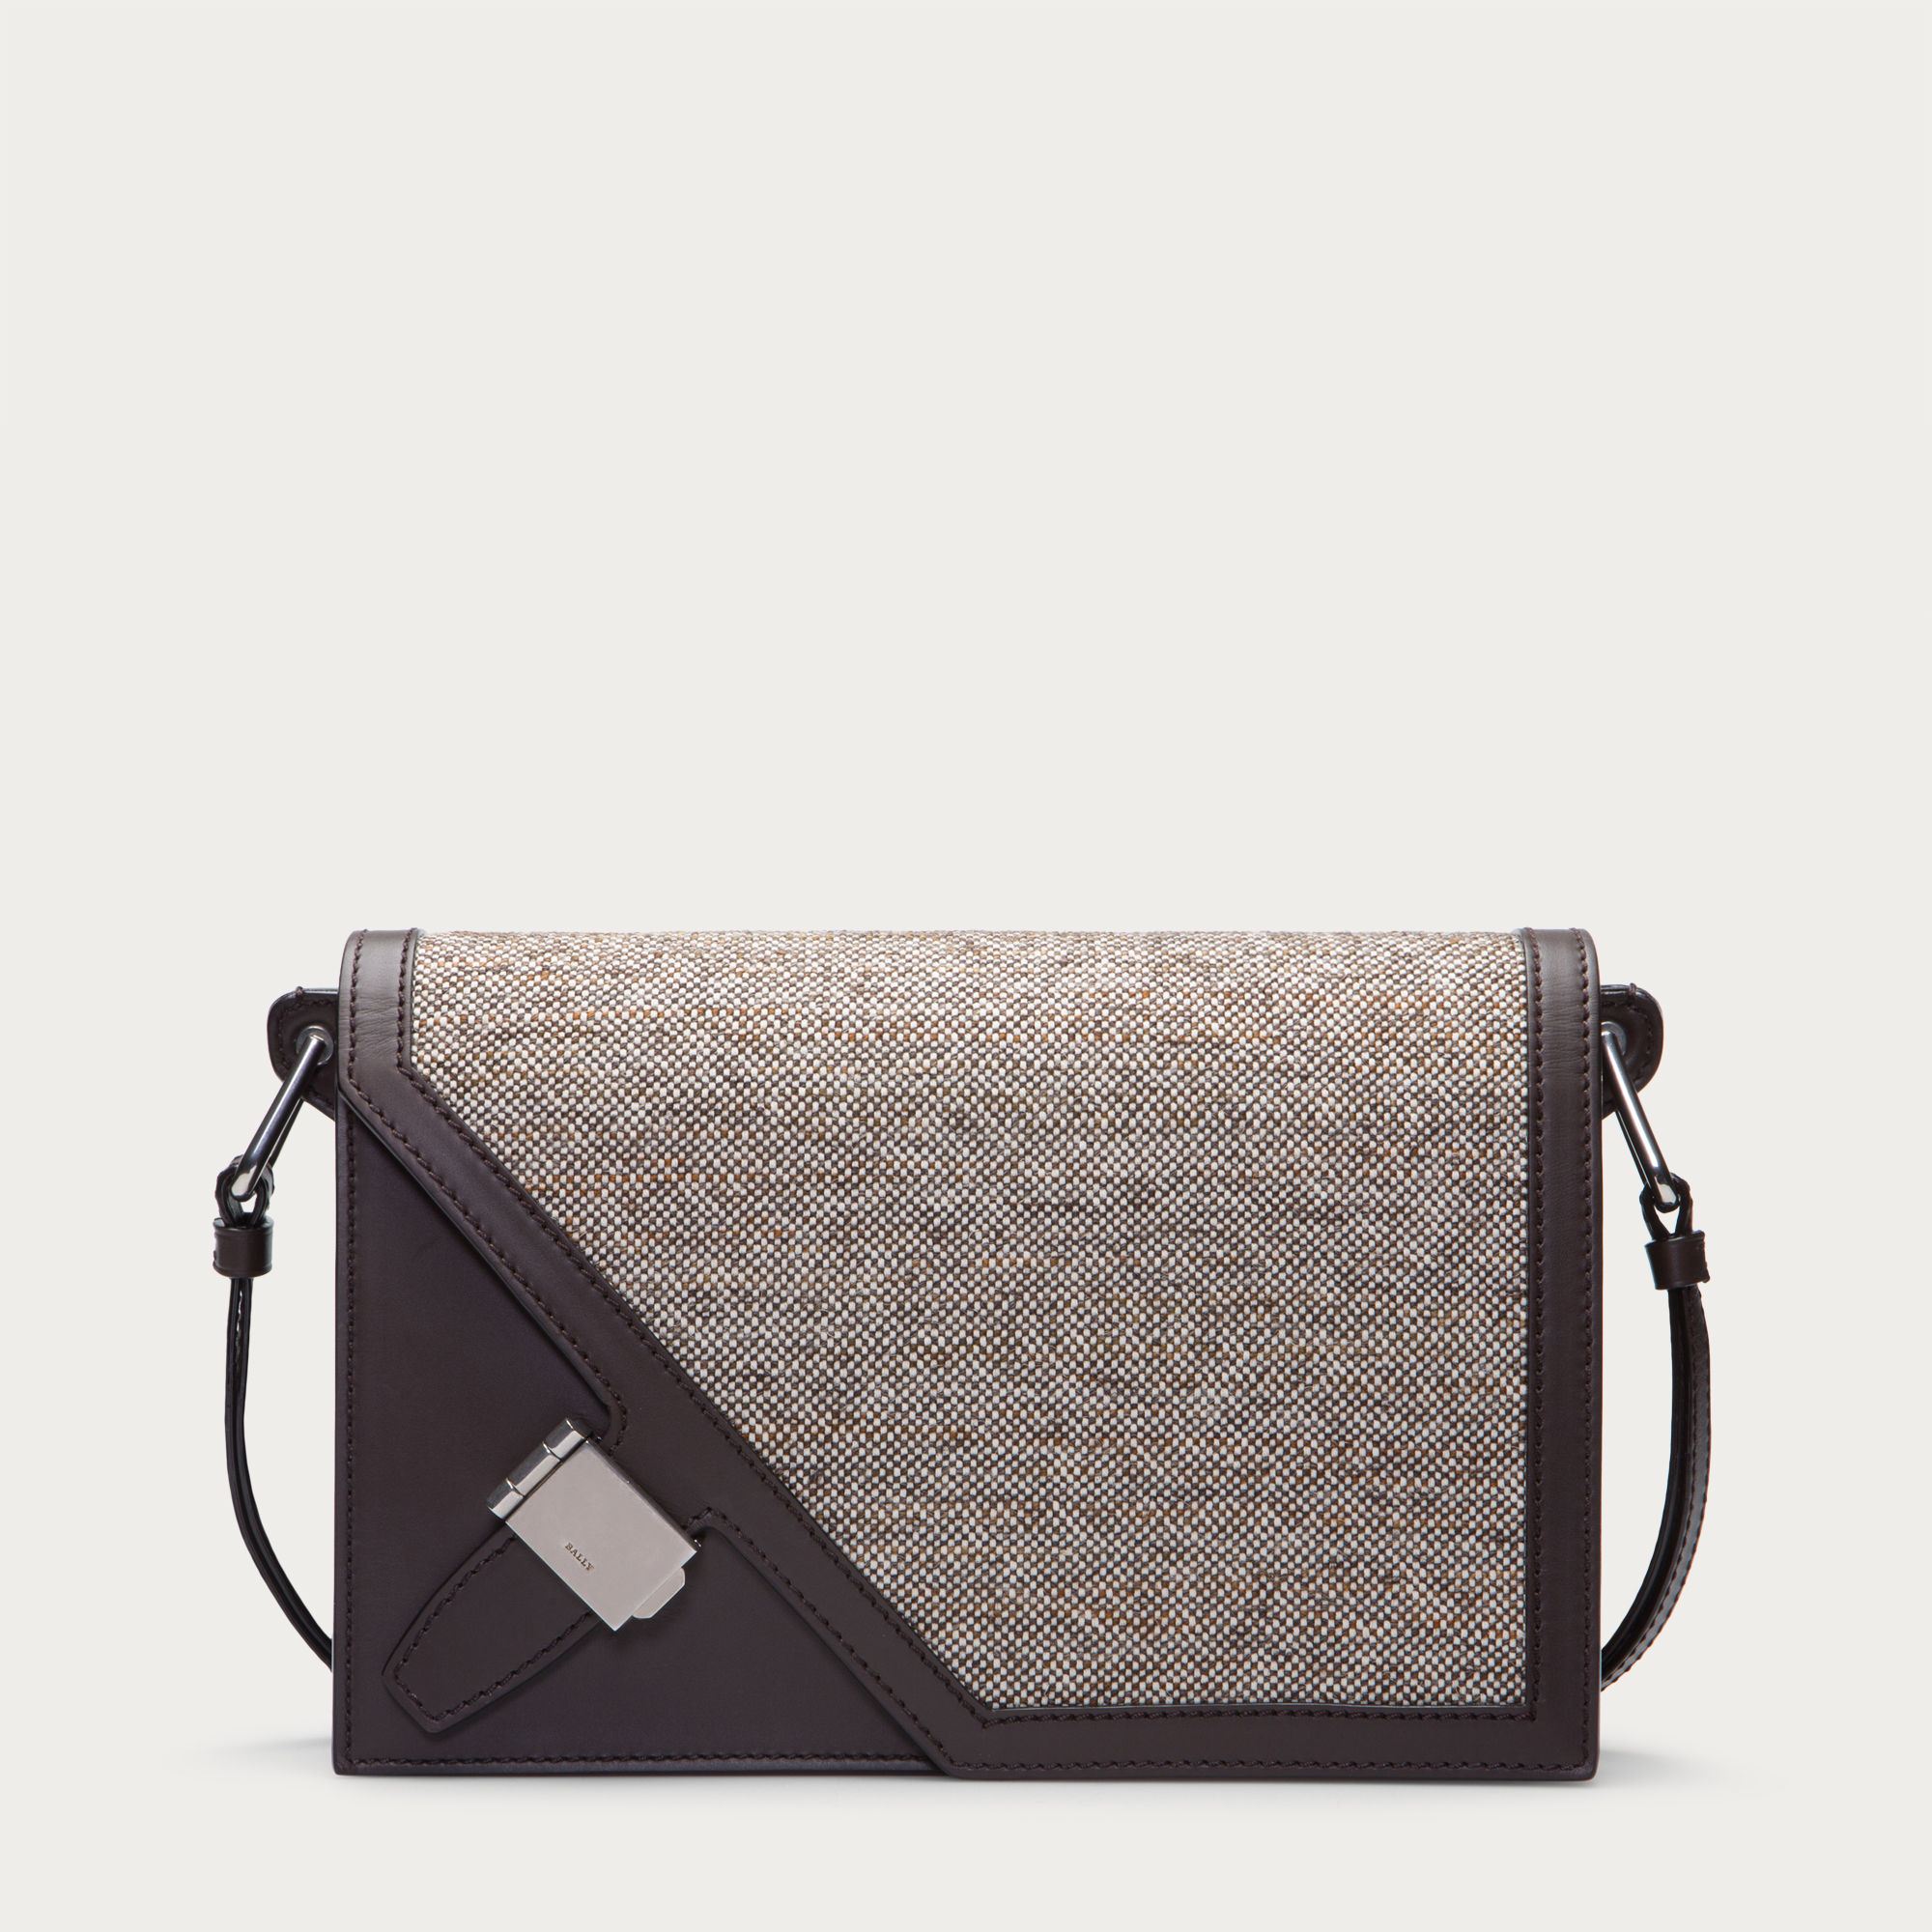 Lyst - Bally Oblique Small Women ́s Leather   Fabric Shoulder Bag In ... c585942d9977f